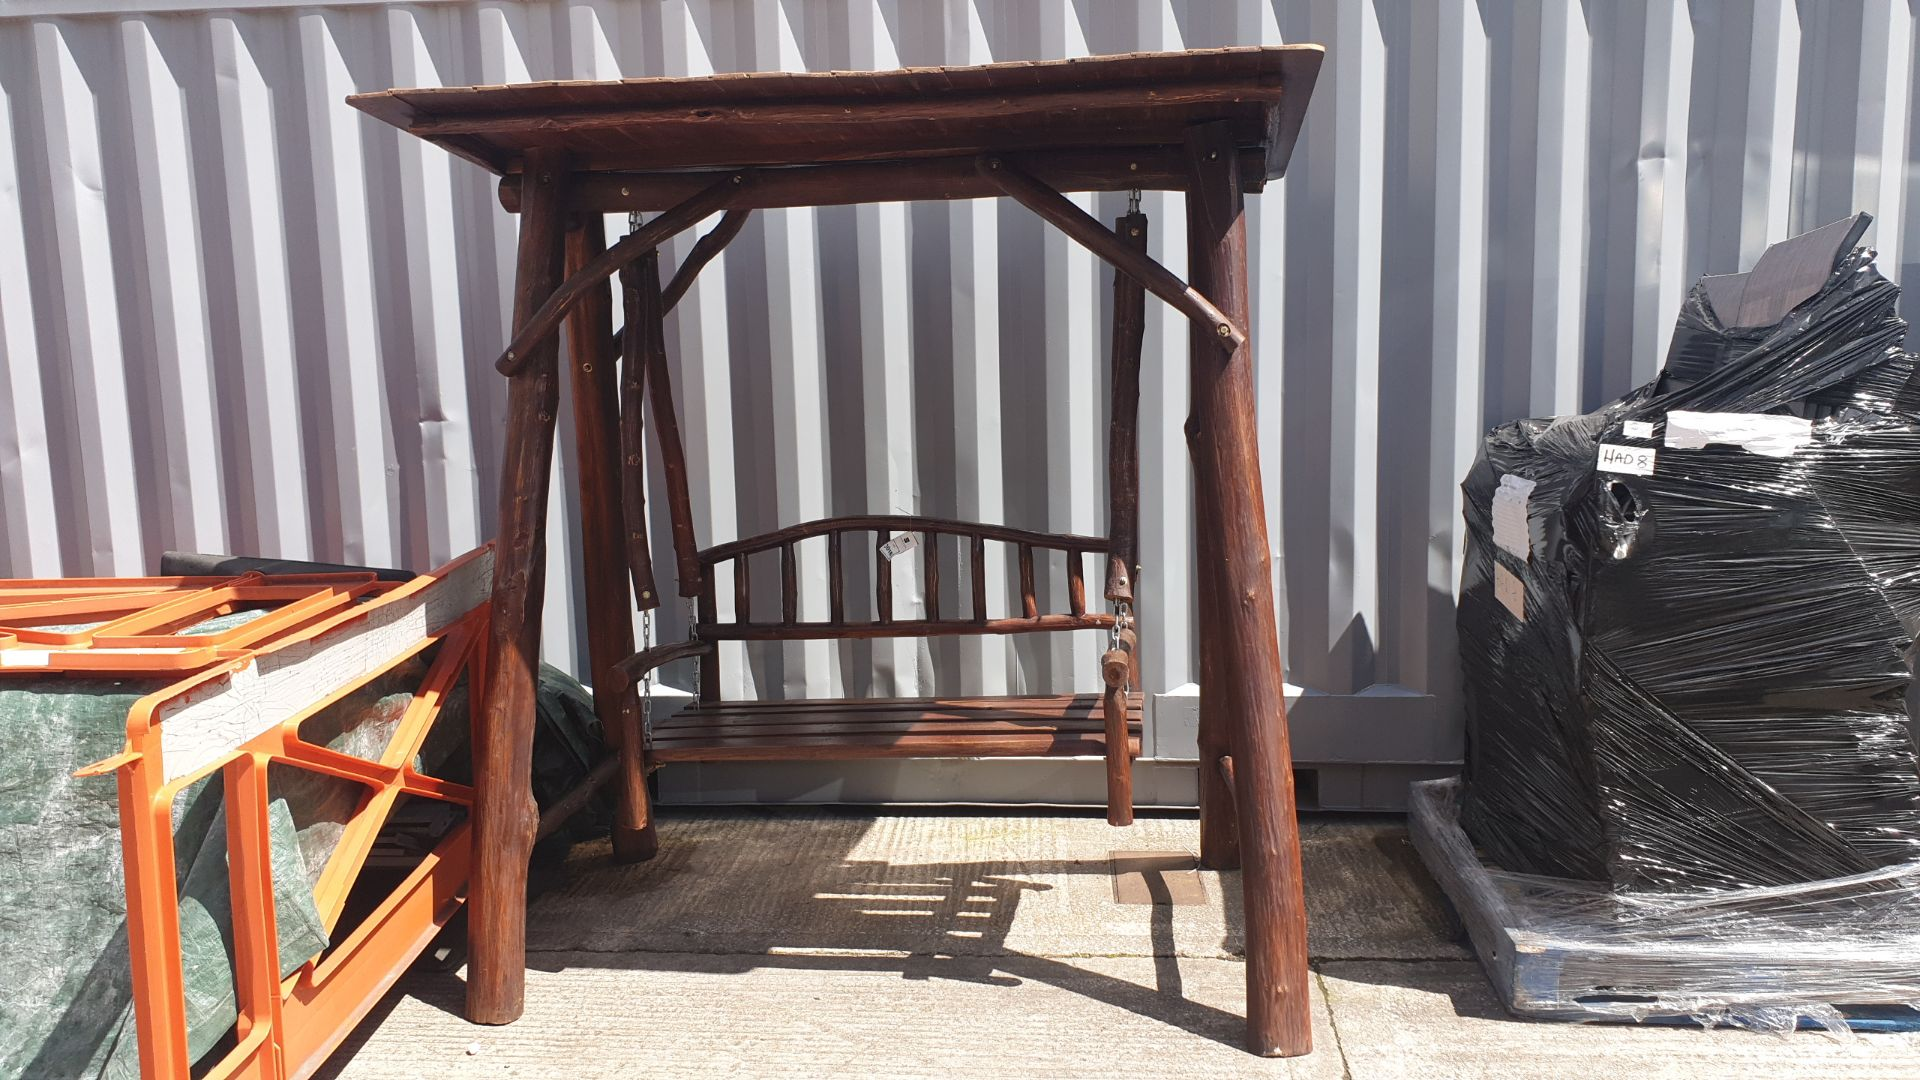 Lot 1115 - BRAND NEW SOLID TEAK ROOT WOODEN 2 SEATER SWING 250 X 120 X 200cm RRP £875